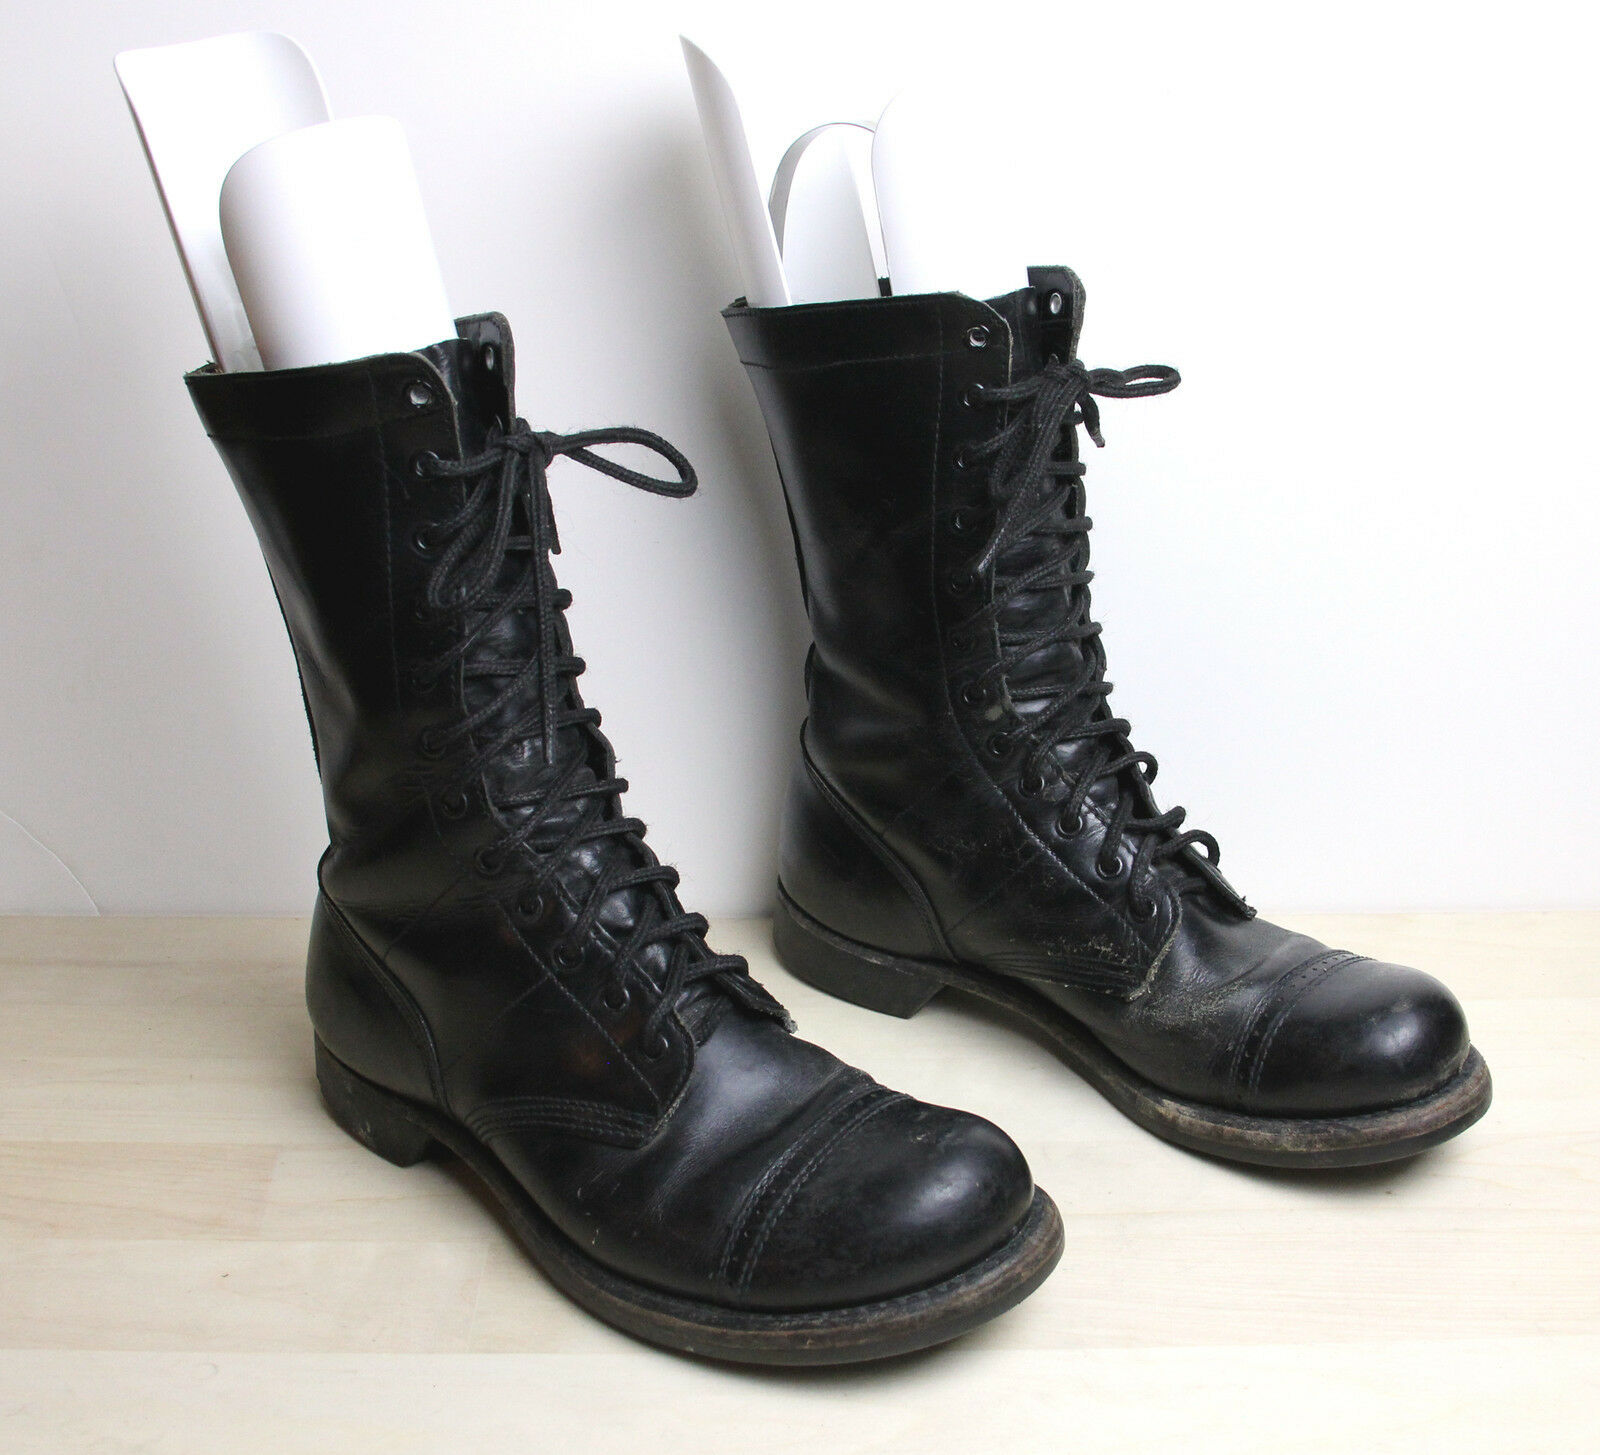 Vintage CORCORAN Military Jump Boots Mens Size 9 D Cap Toe Black Leather USA